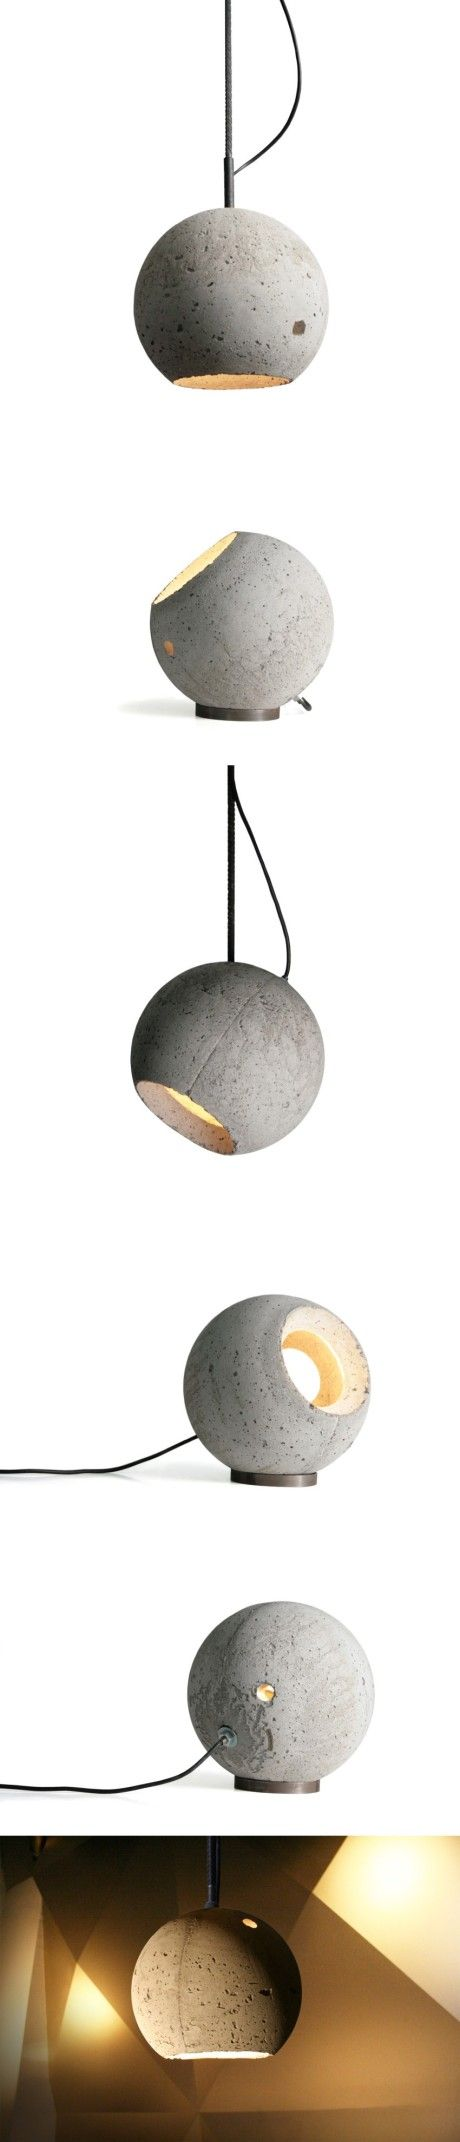 chic hanging lighting ideas lamp. 8. A Perfect Hanging Lighting Ball Chic Ideas Lamp